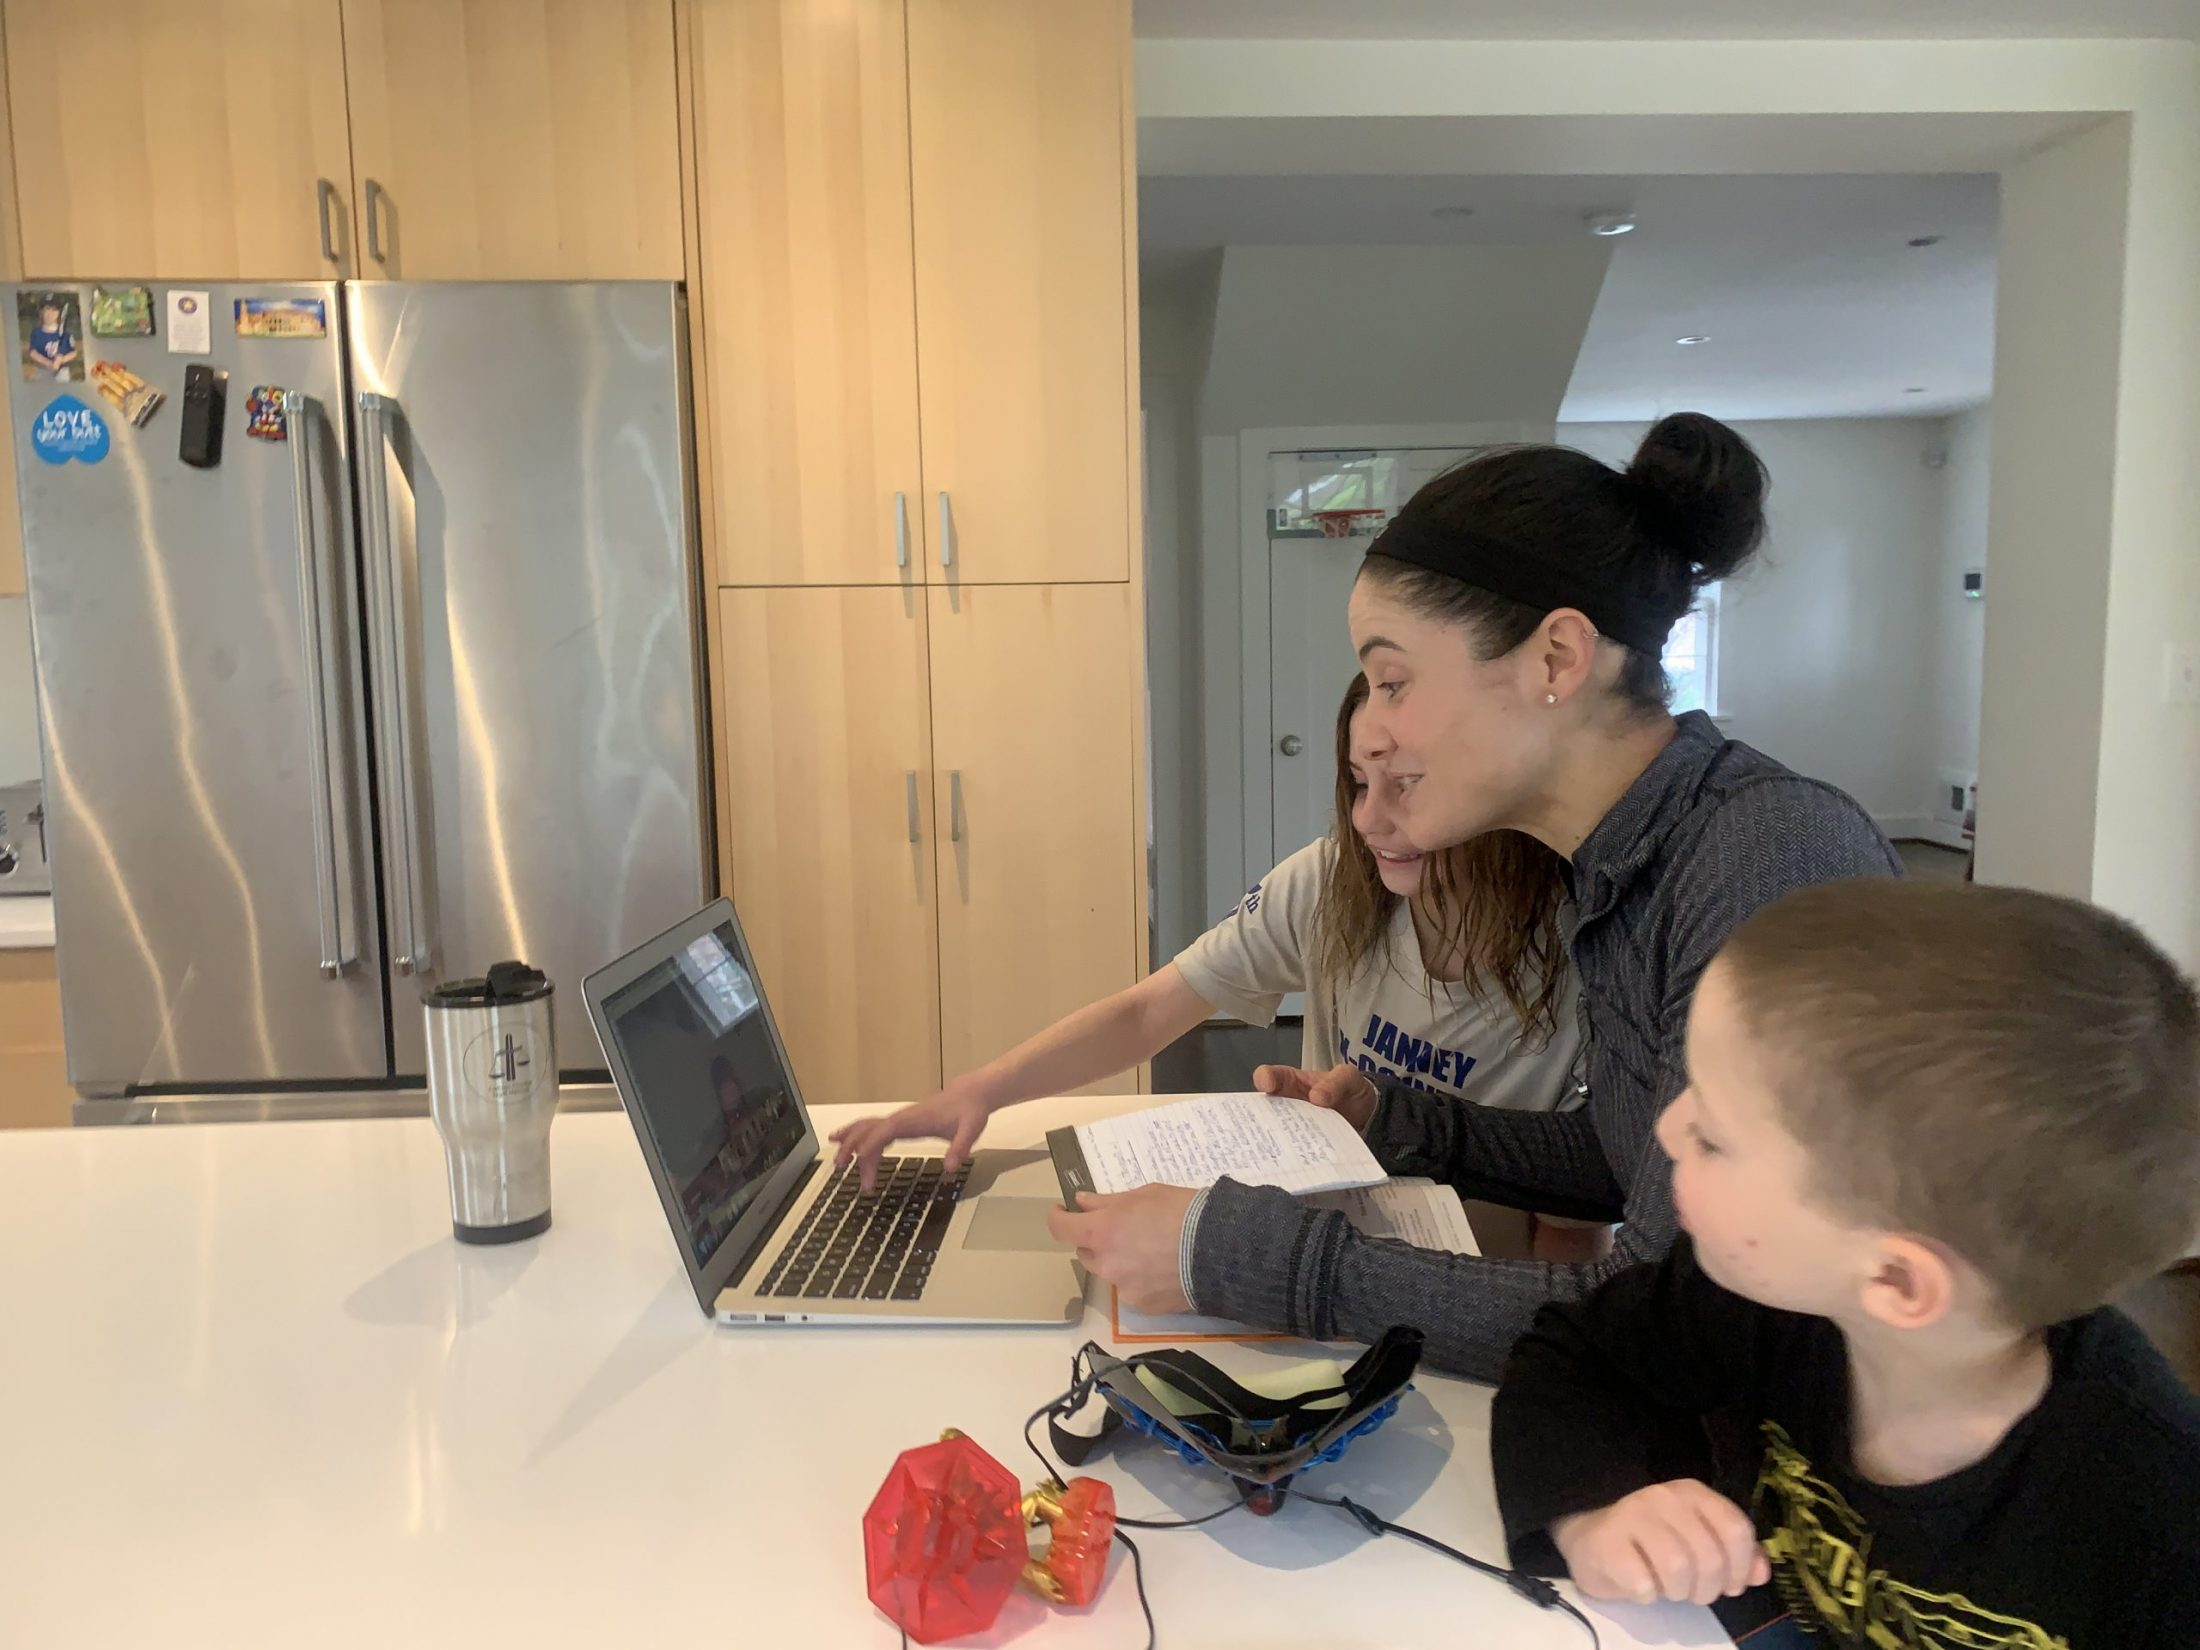 DC widow blog writer Marjorie Brimley teaches students remotely surrounded by her kids